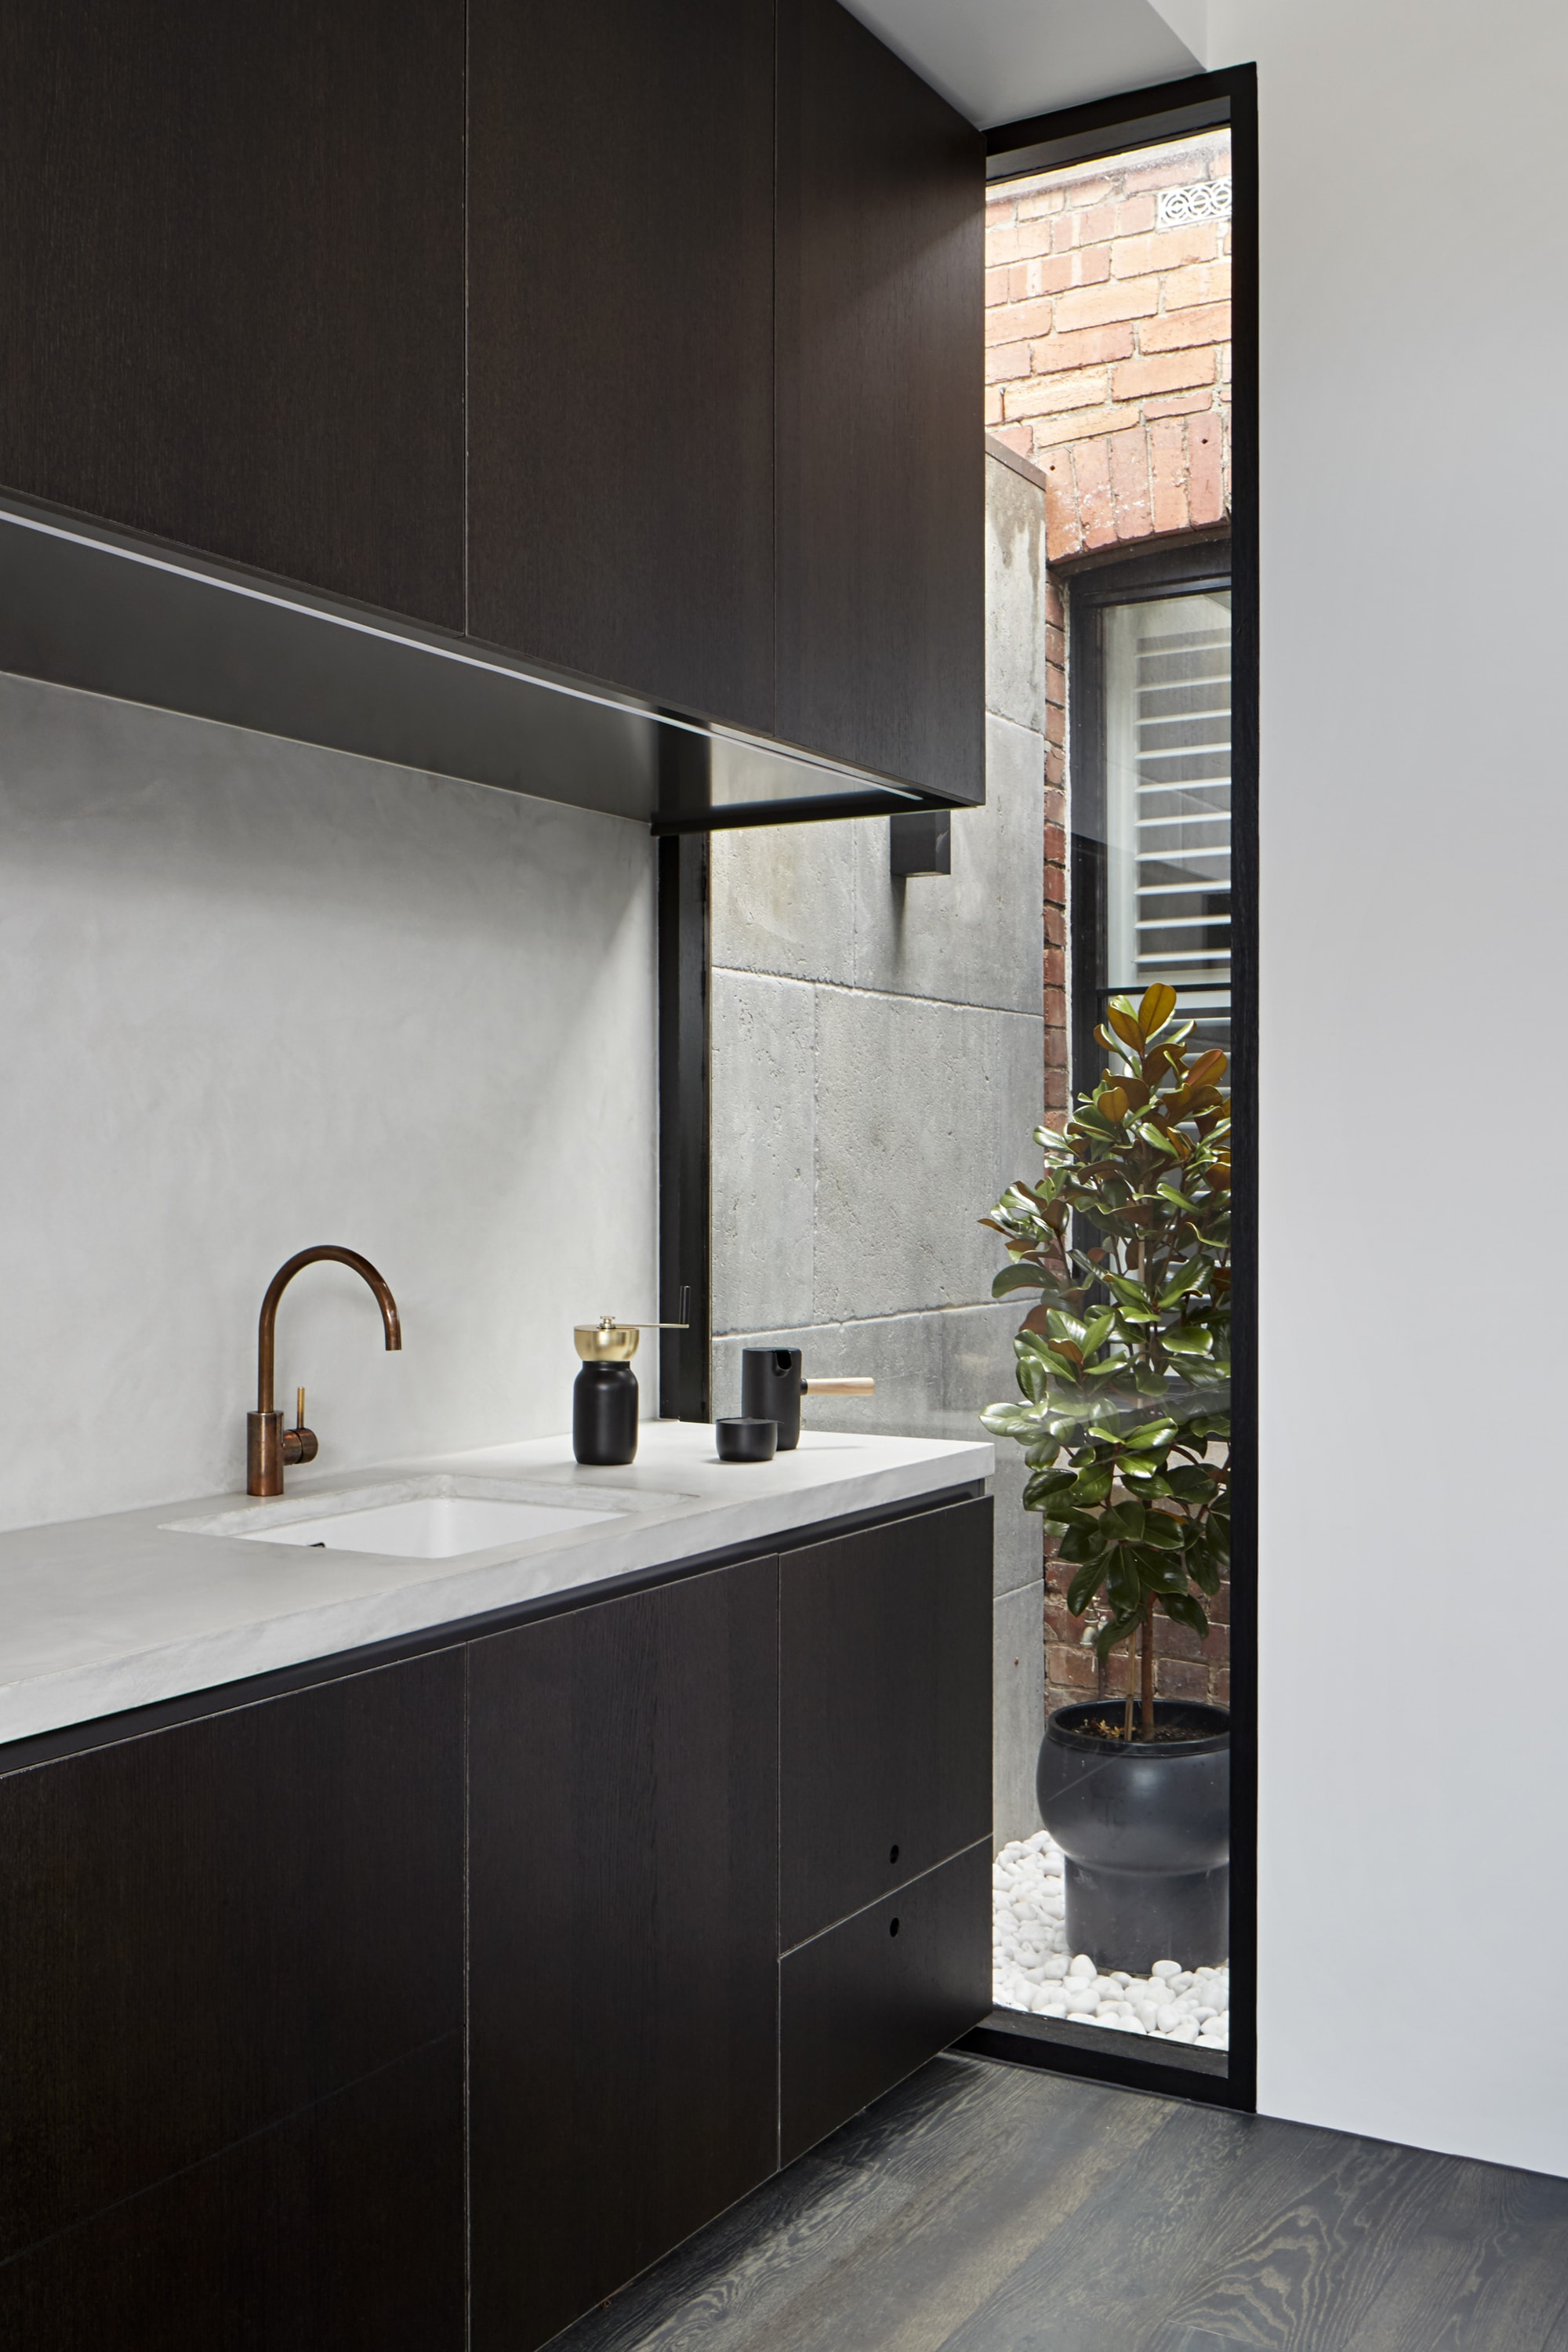 The Pocket House By Whiting Architects The Fisher & Paykel Series Melbourne, Victoria, Australiaf&p Whiting Littleogrady ©smg 8761 Min